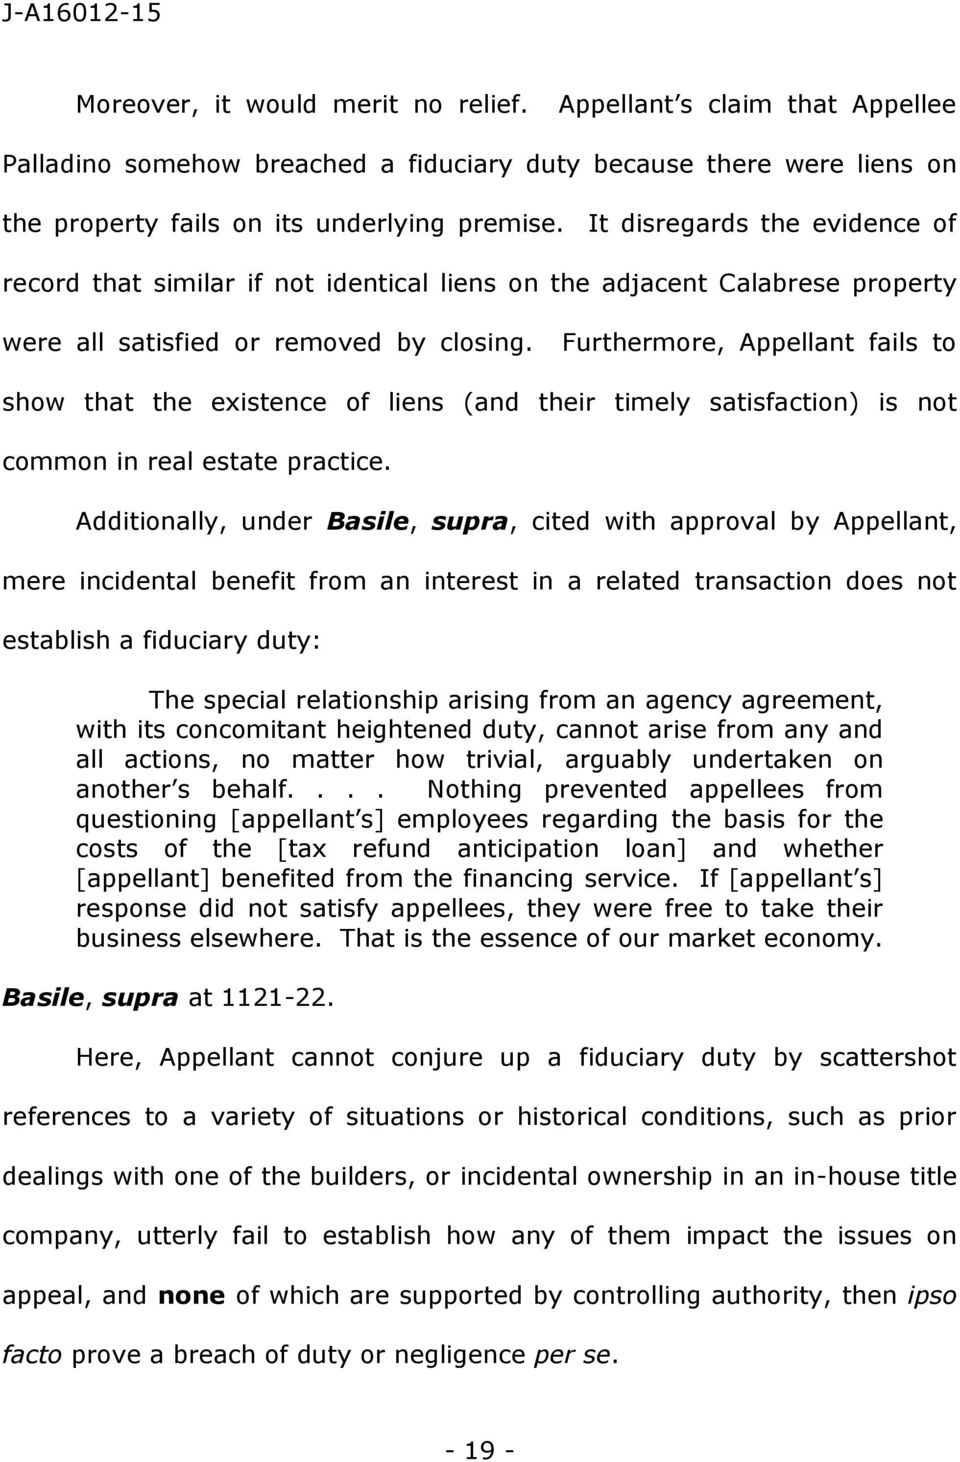 Furthermore, Appellant fails to show that the existence of liens (and their timely satisfaction) is not common in real estate practice.